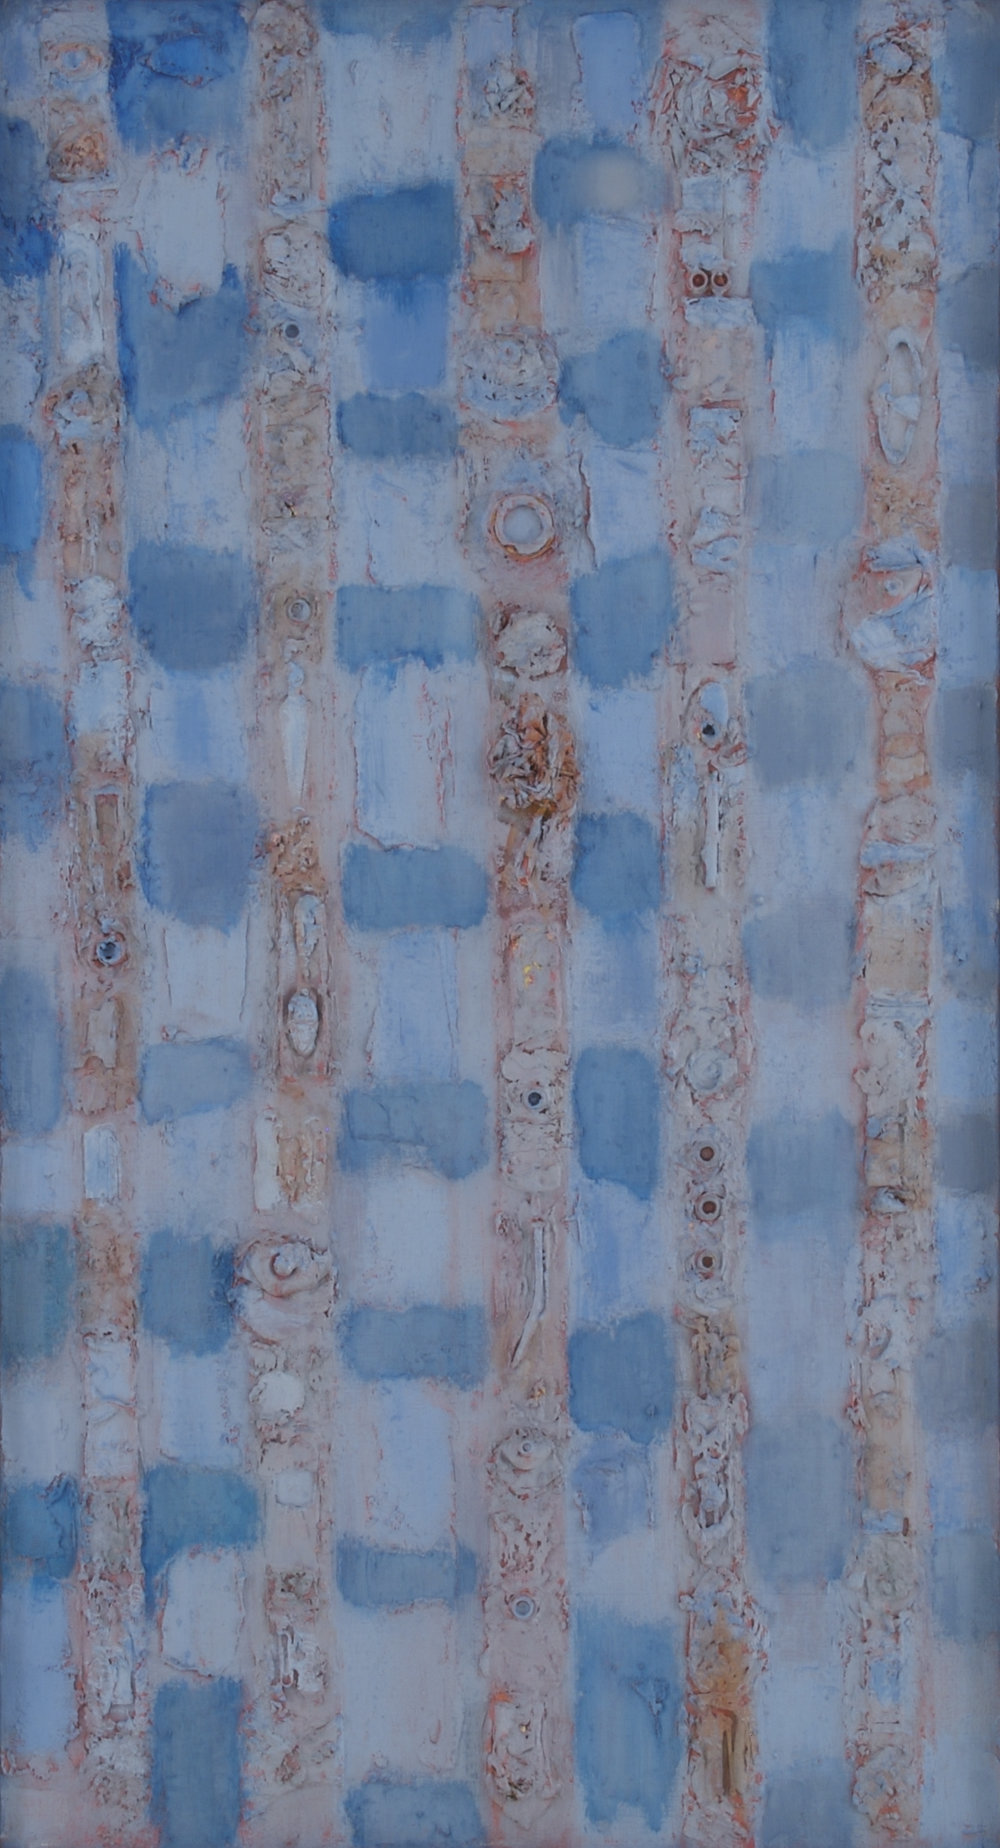 "Compassion Theme the Nail,  44"" x 24"", 1952"